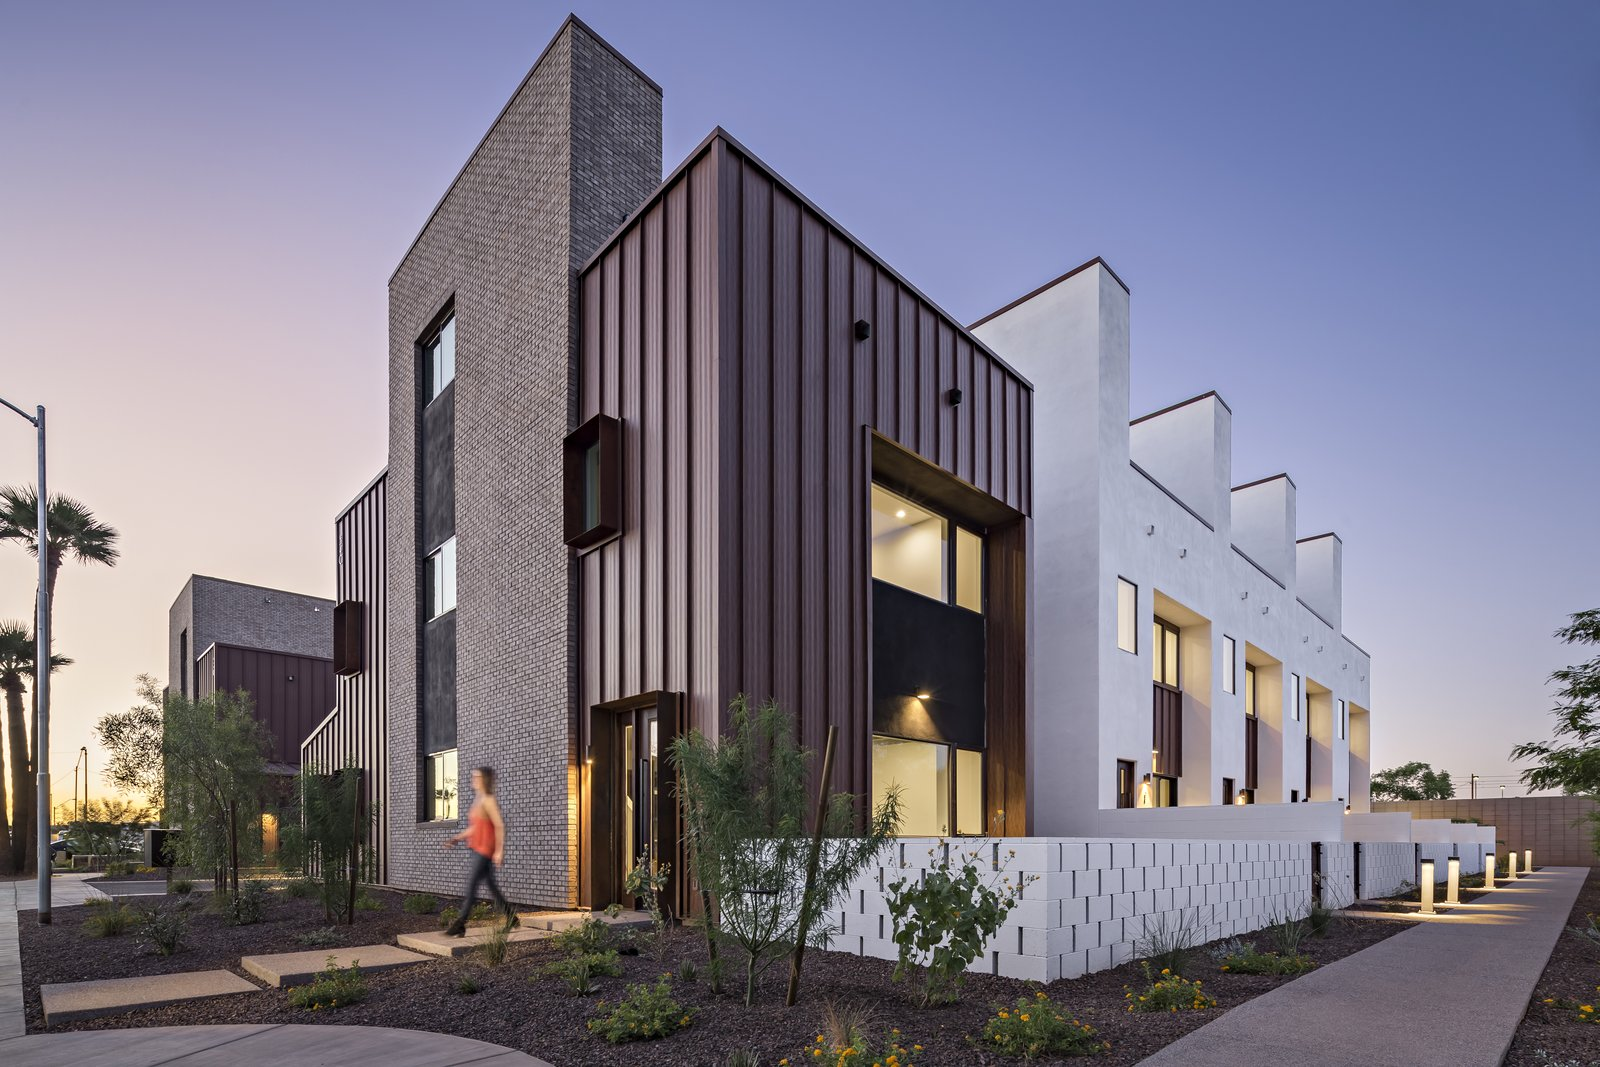 Uptown Row consists of 10 townhomes a mere 500 feet from a light rail station in Phoenix. Each unit has a semi-private courtyard behind a spaced block wall, and a private roof deck with view of the city skyline and mountains beyond Tagged: Exterior, Apartment, Metal Siding Material, and Brick Siding Material.  Uptown Row by The Ranch Mine